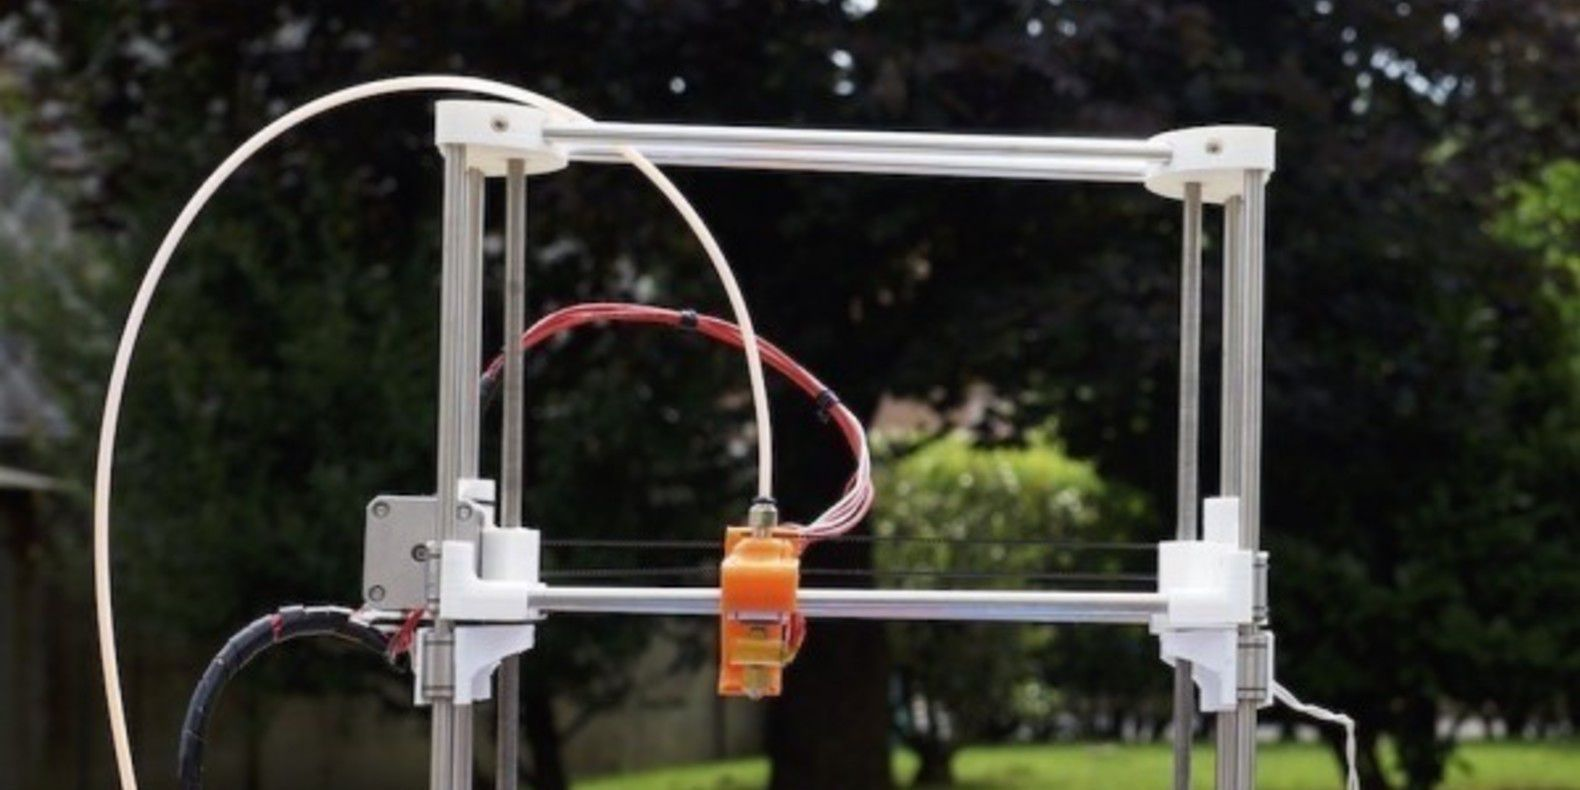 3D files to build your own Dagoma 3D printer